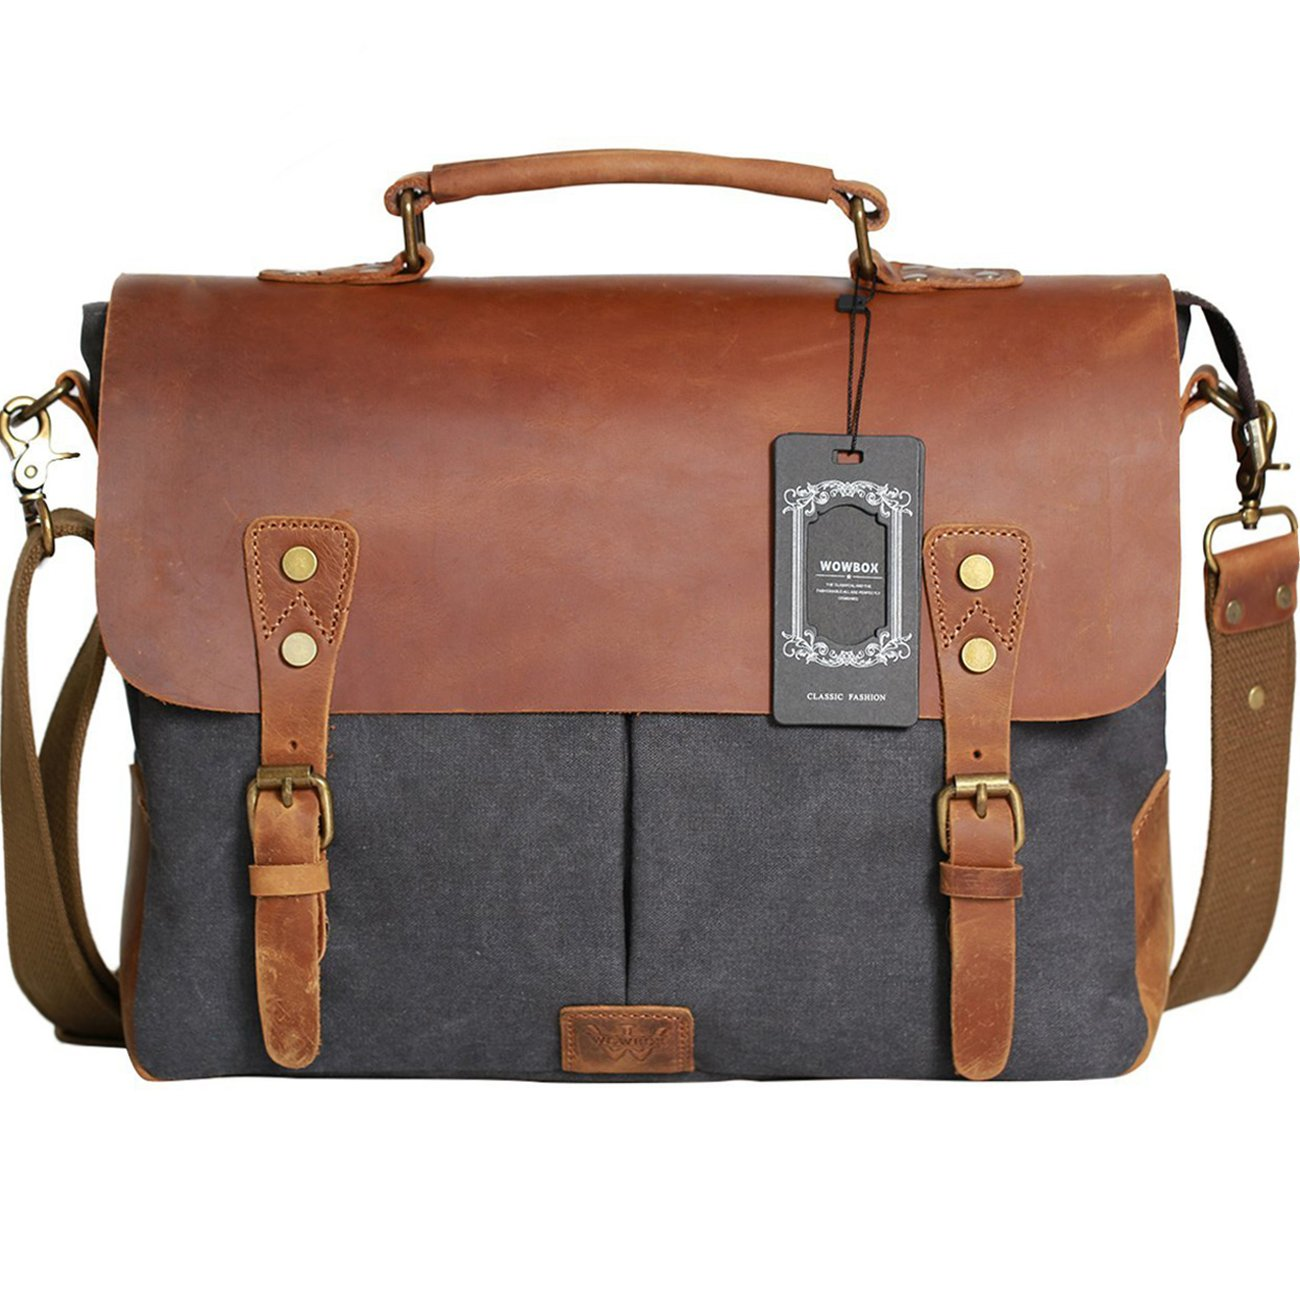 Use Messenger Real Everday Laptop Inch vintage Canvas Leather Briefcase Bag Women Satchel And Men 14 13 Wowbox For FJuT1c3lK